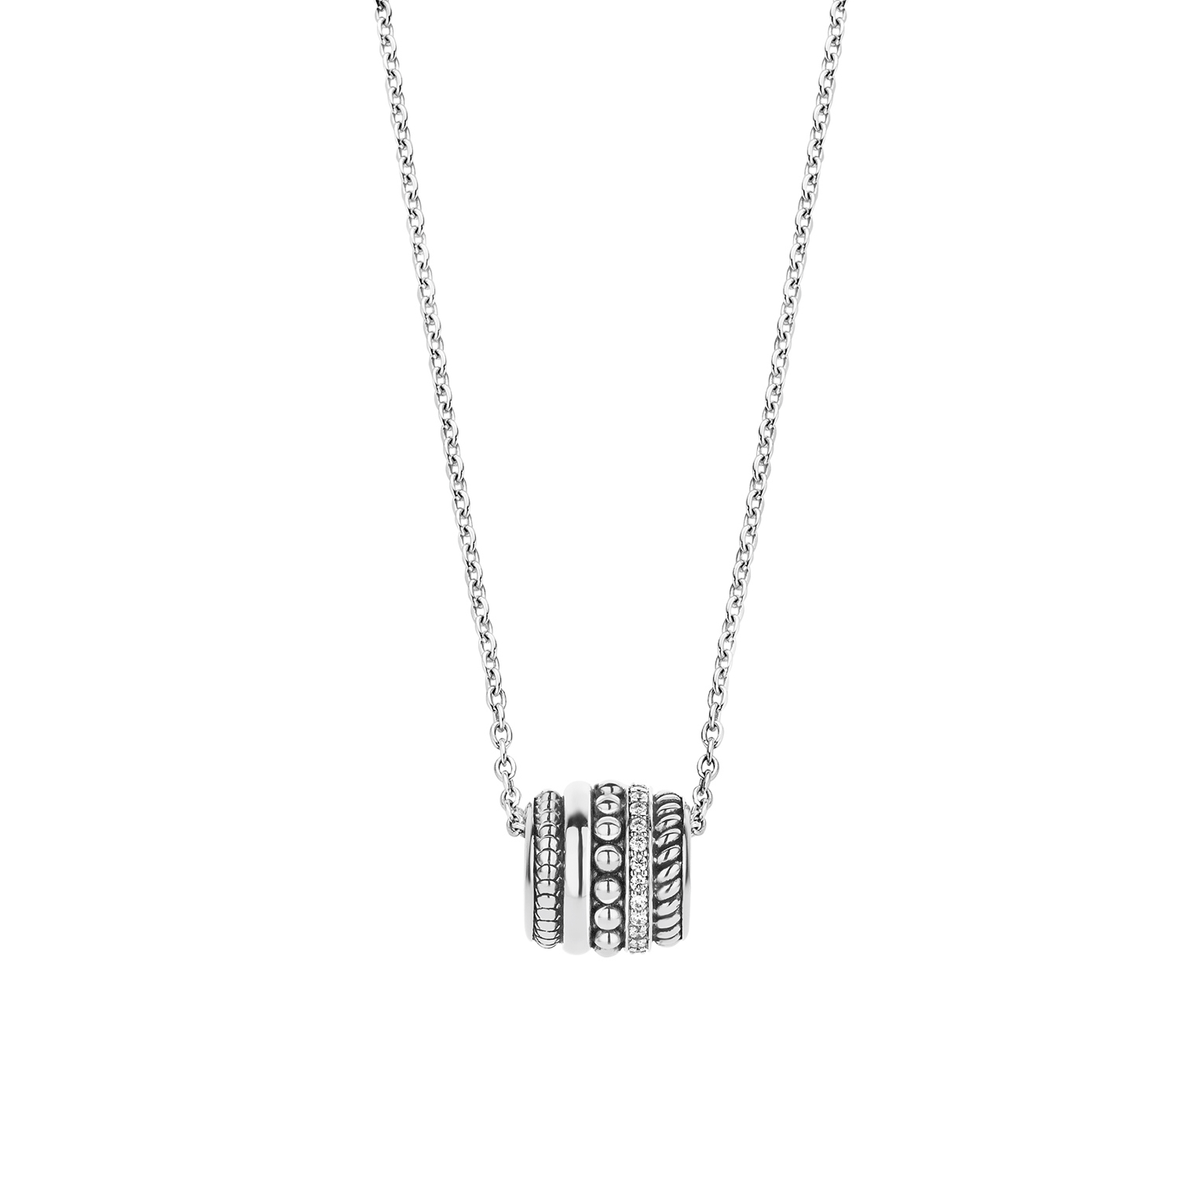 TI SENTO - Milano Necklace 3853ZI